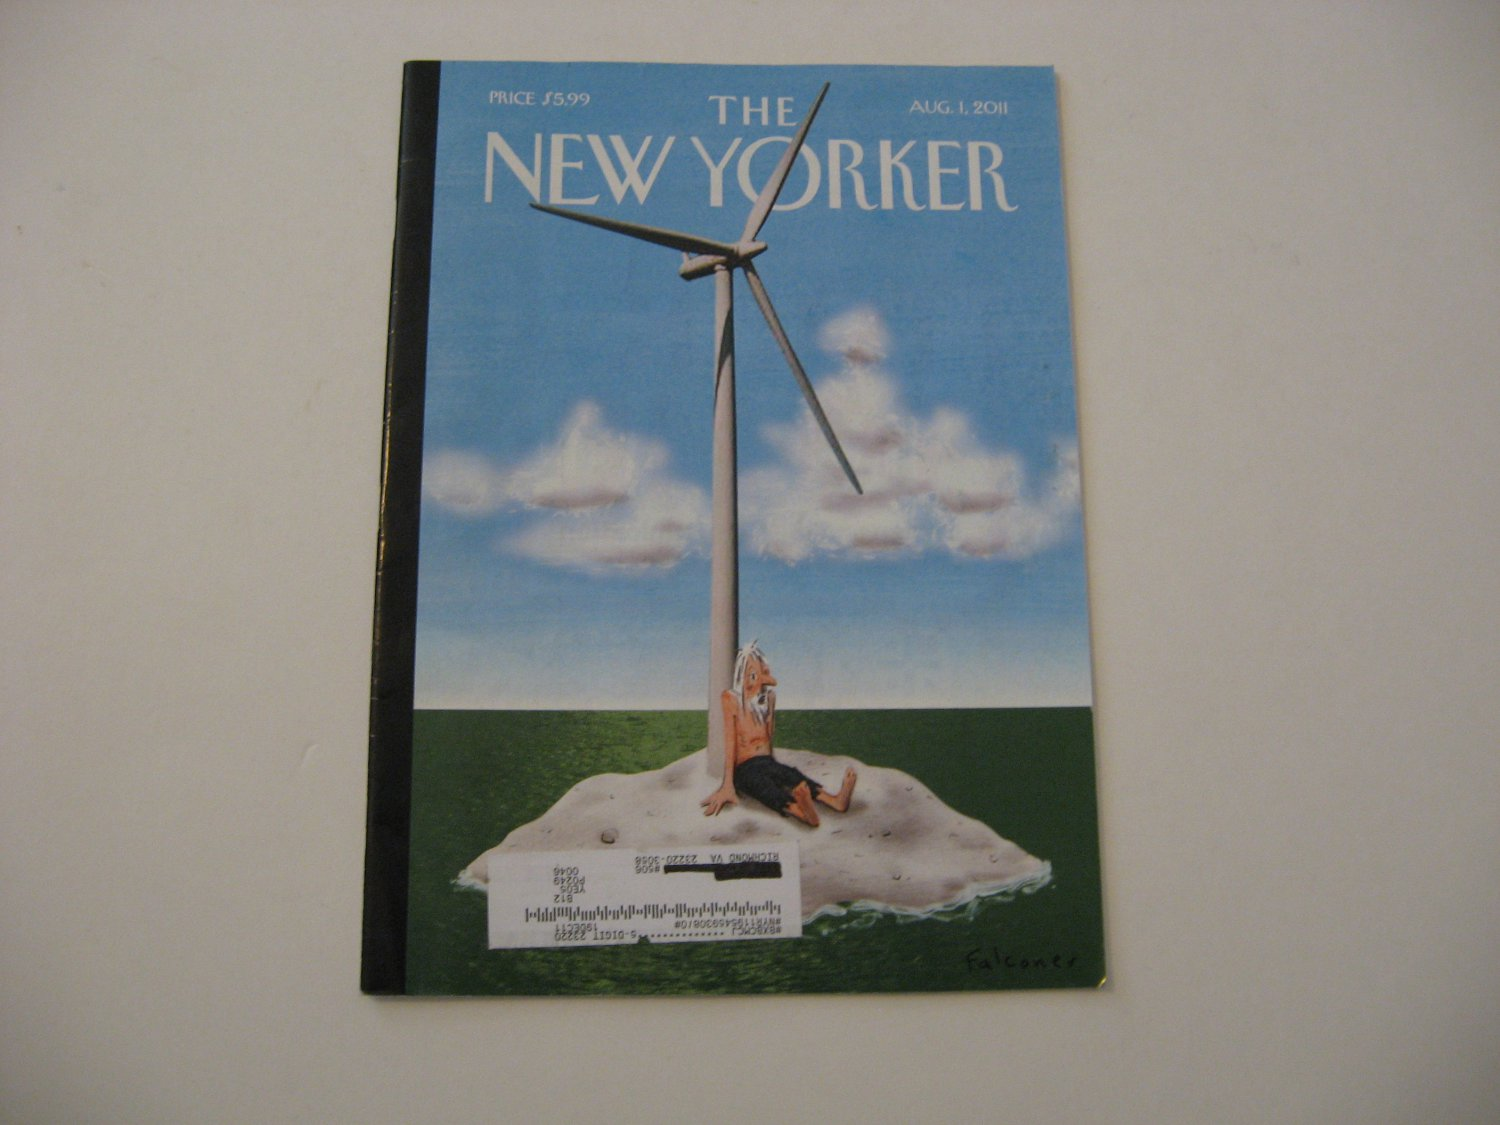 The New Yorker Magazine - Issue Date - Aug. 1, 2011